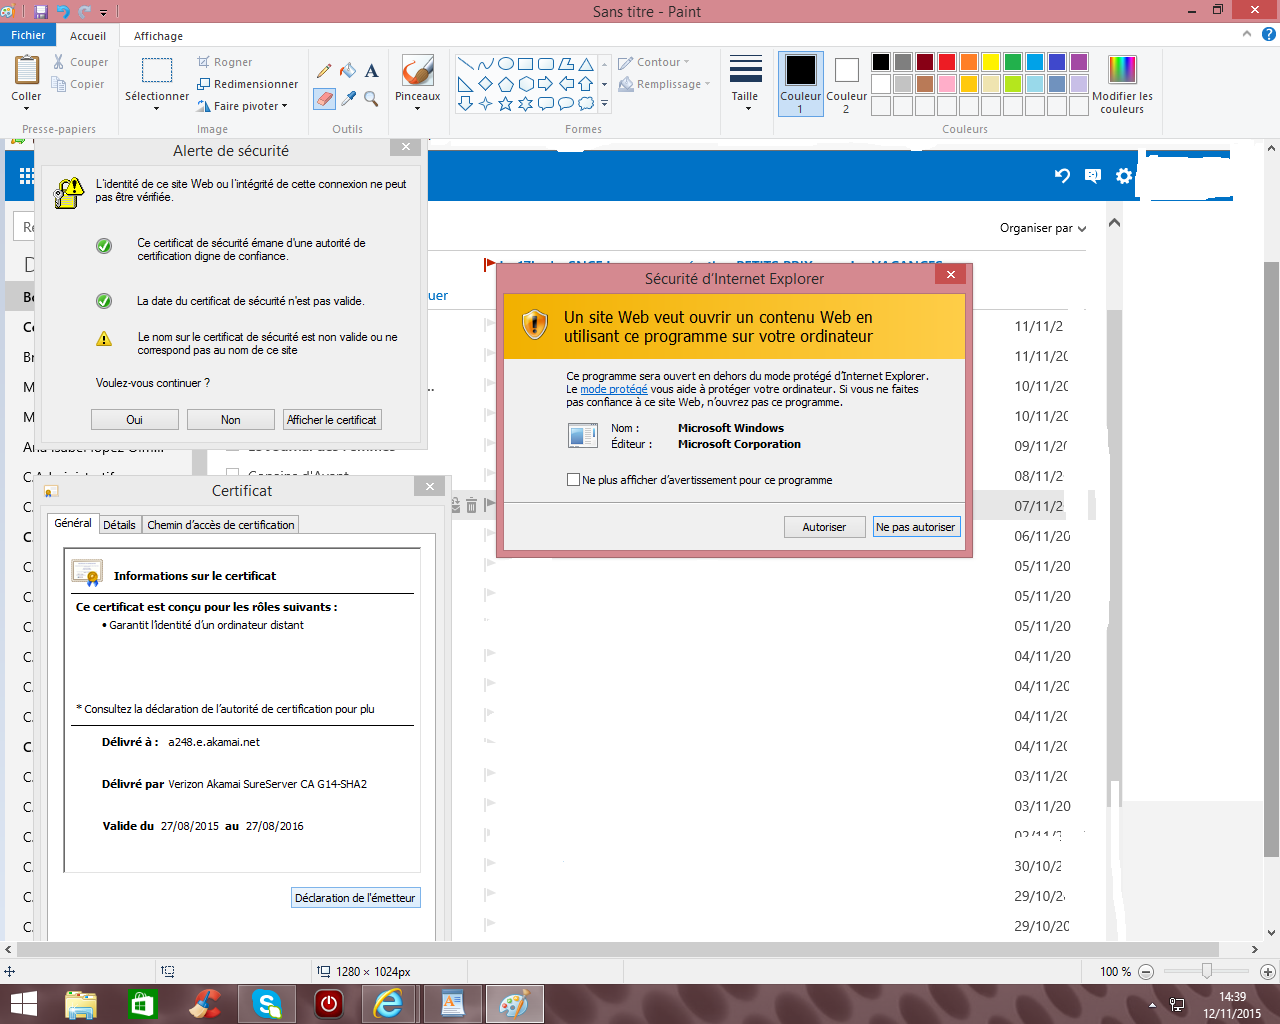 EKmoT5Ccr0R_Alerte-de-sécurité-Outlook.png